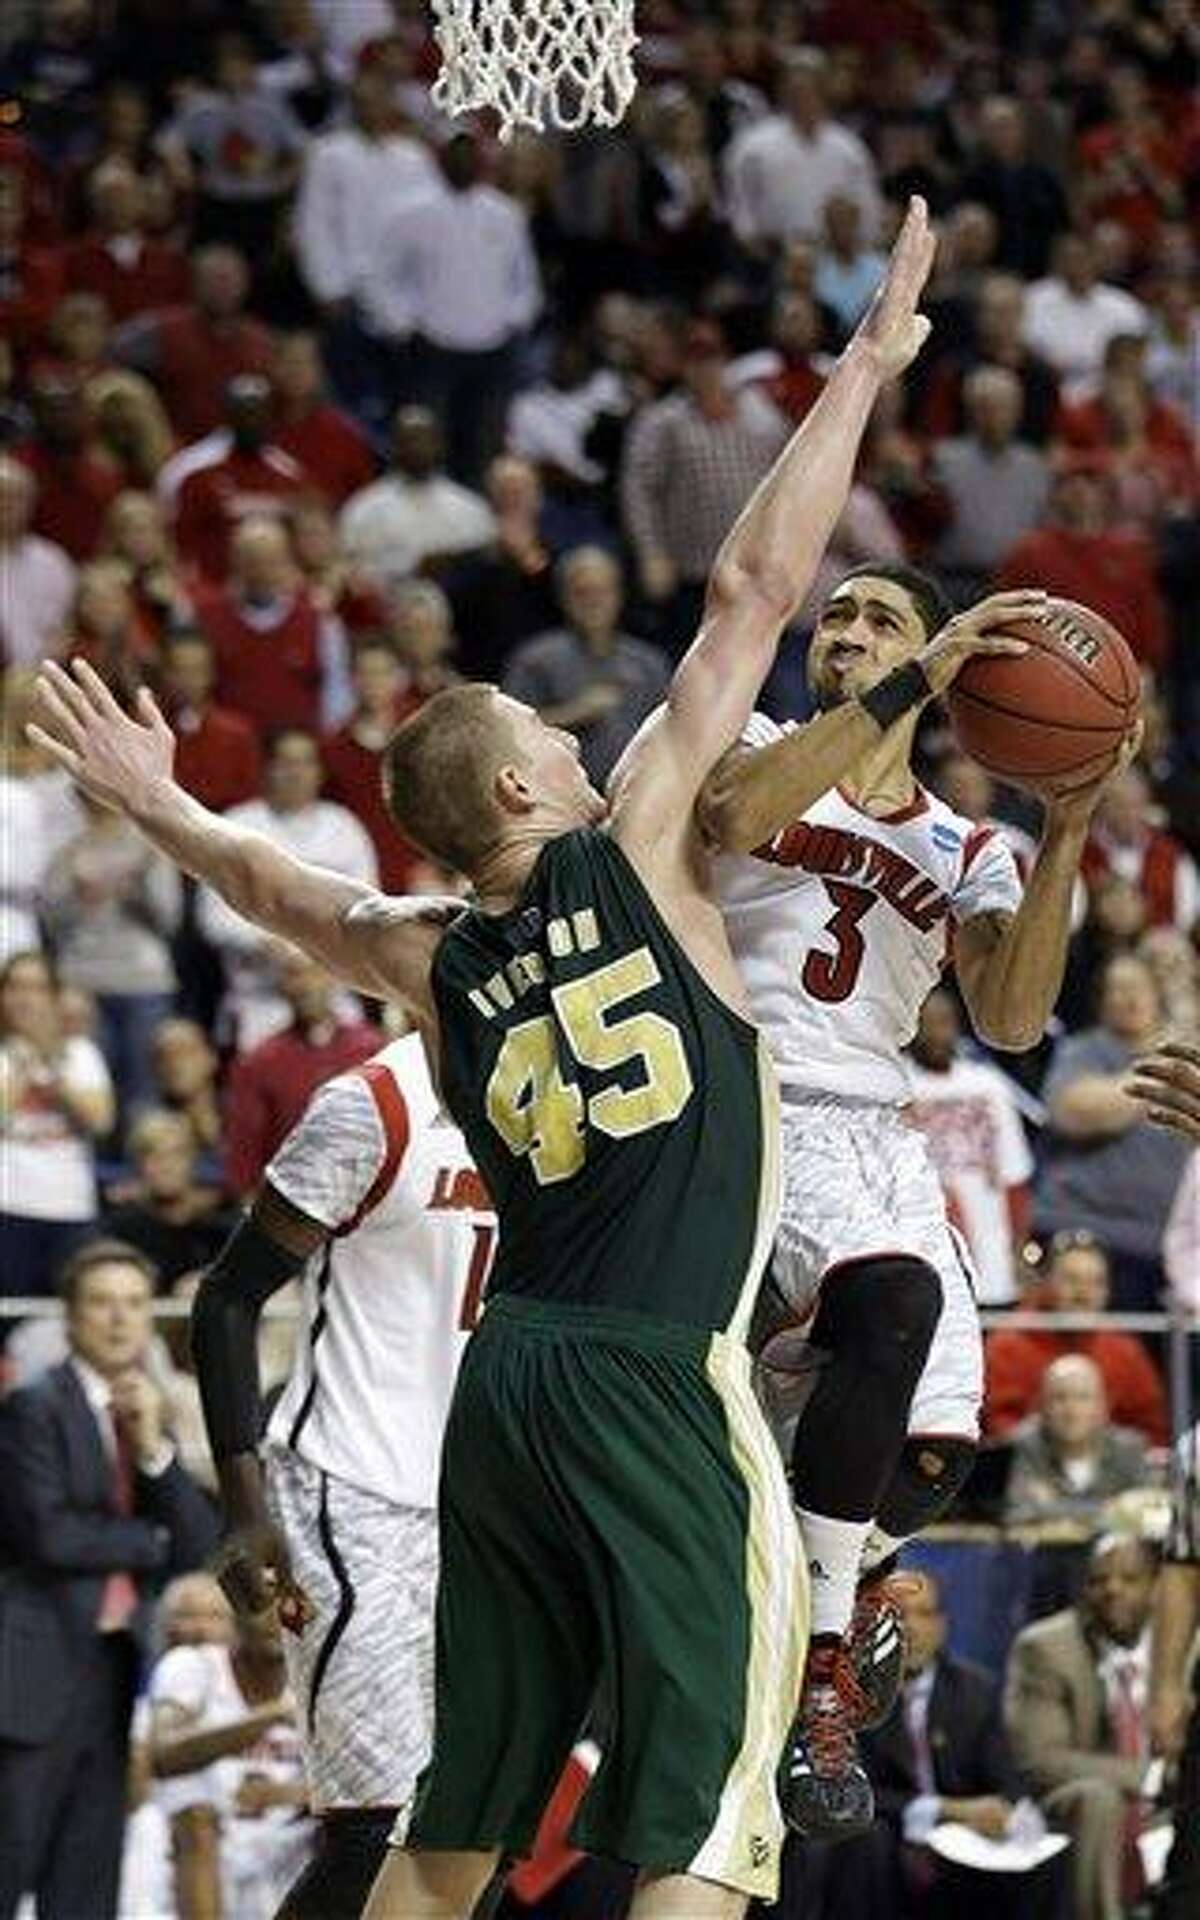 Louisville guard Peyton Siva (3) drives against Colorado State forward/center Colton Iverson (45) in the second half of a third-round NCAA college basketball tournament game Saturday, March 23, 2013, in Lexington, Ky. Louisville won 82-56. (AP Photo/John Bazemore)